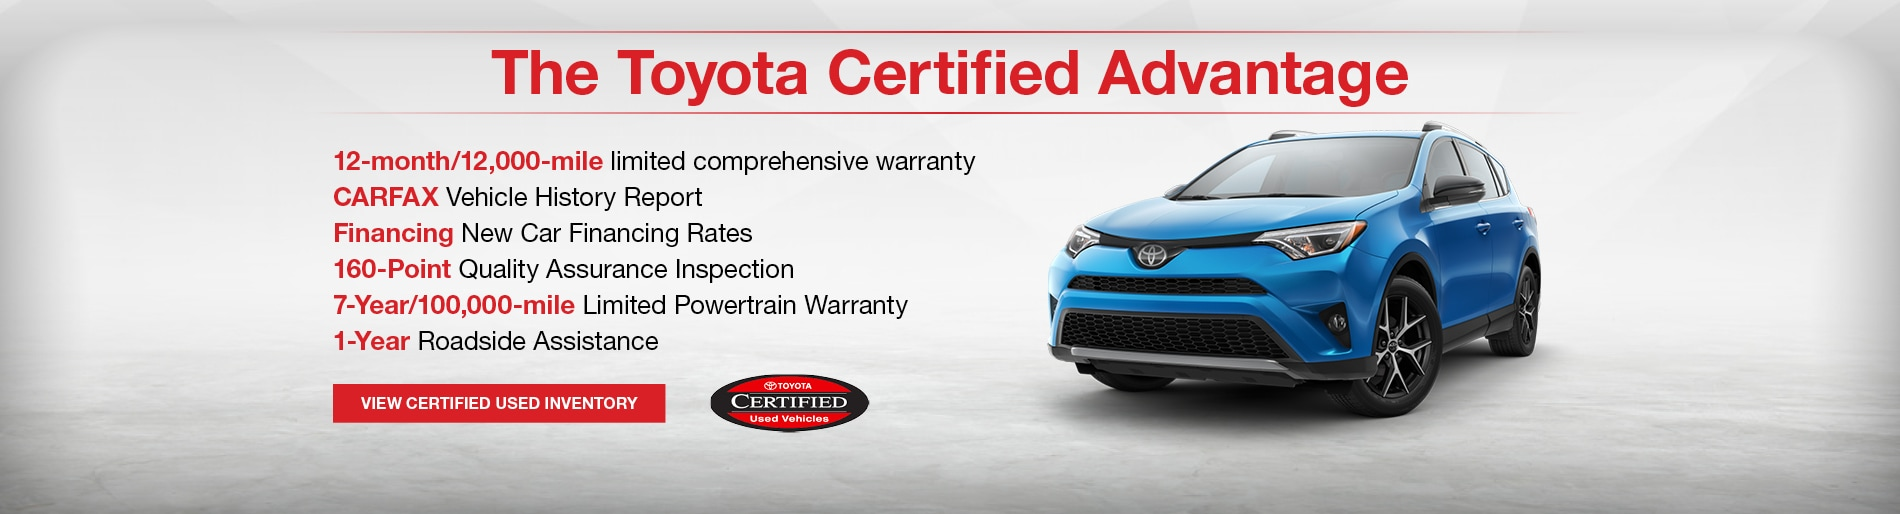 Honda Oakland Service >> San Francisco Toyota: New 2018-2019 & Used Car Dealership and Service Center in San Francisco ...